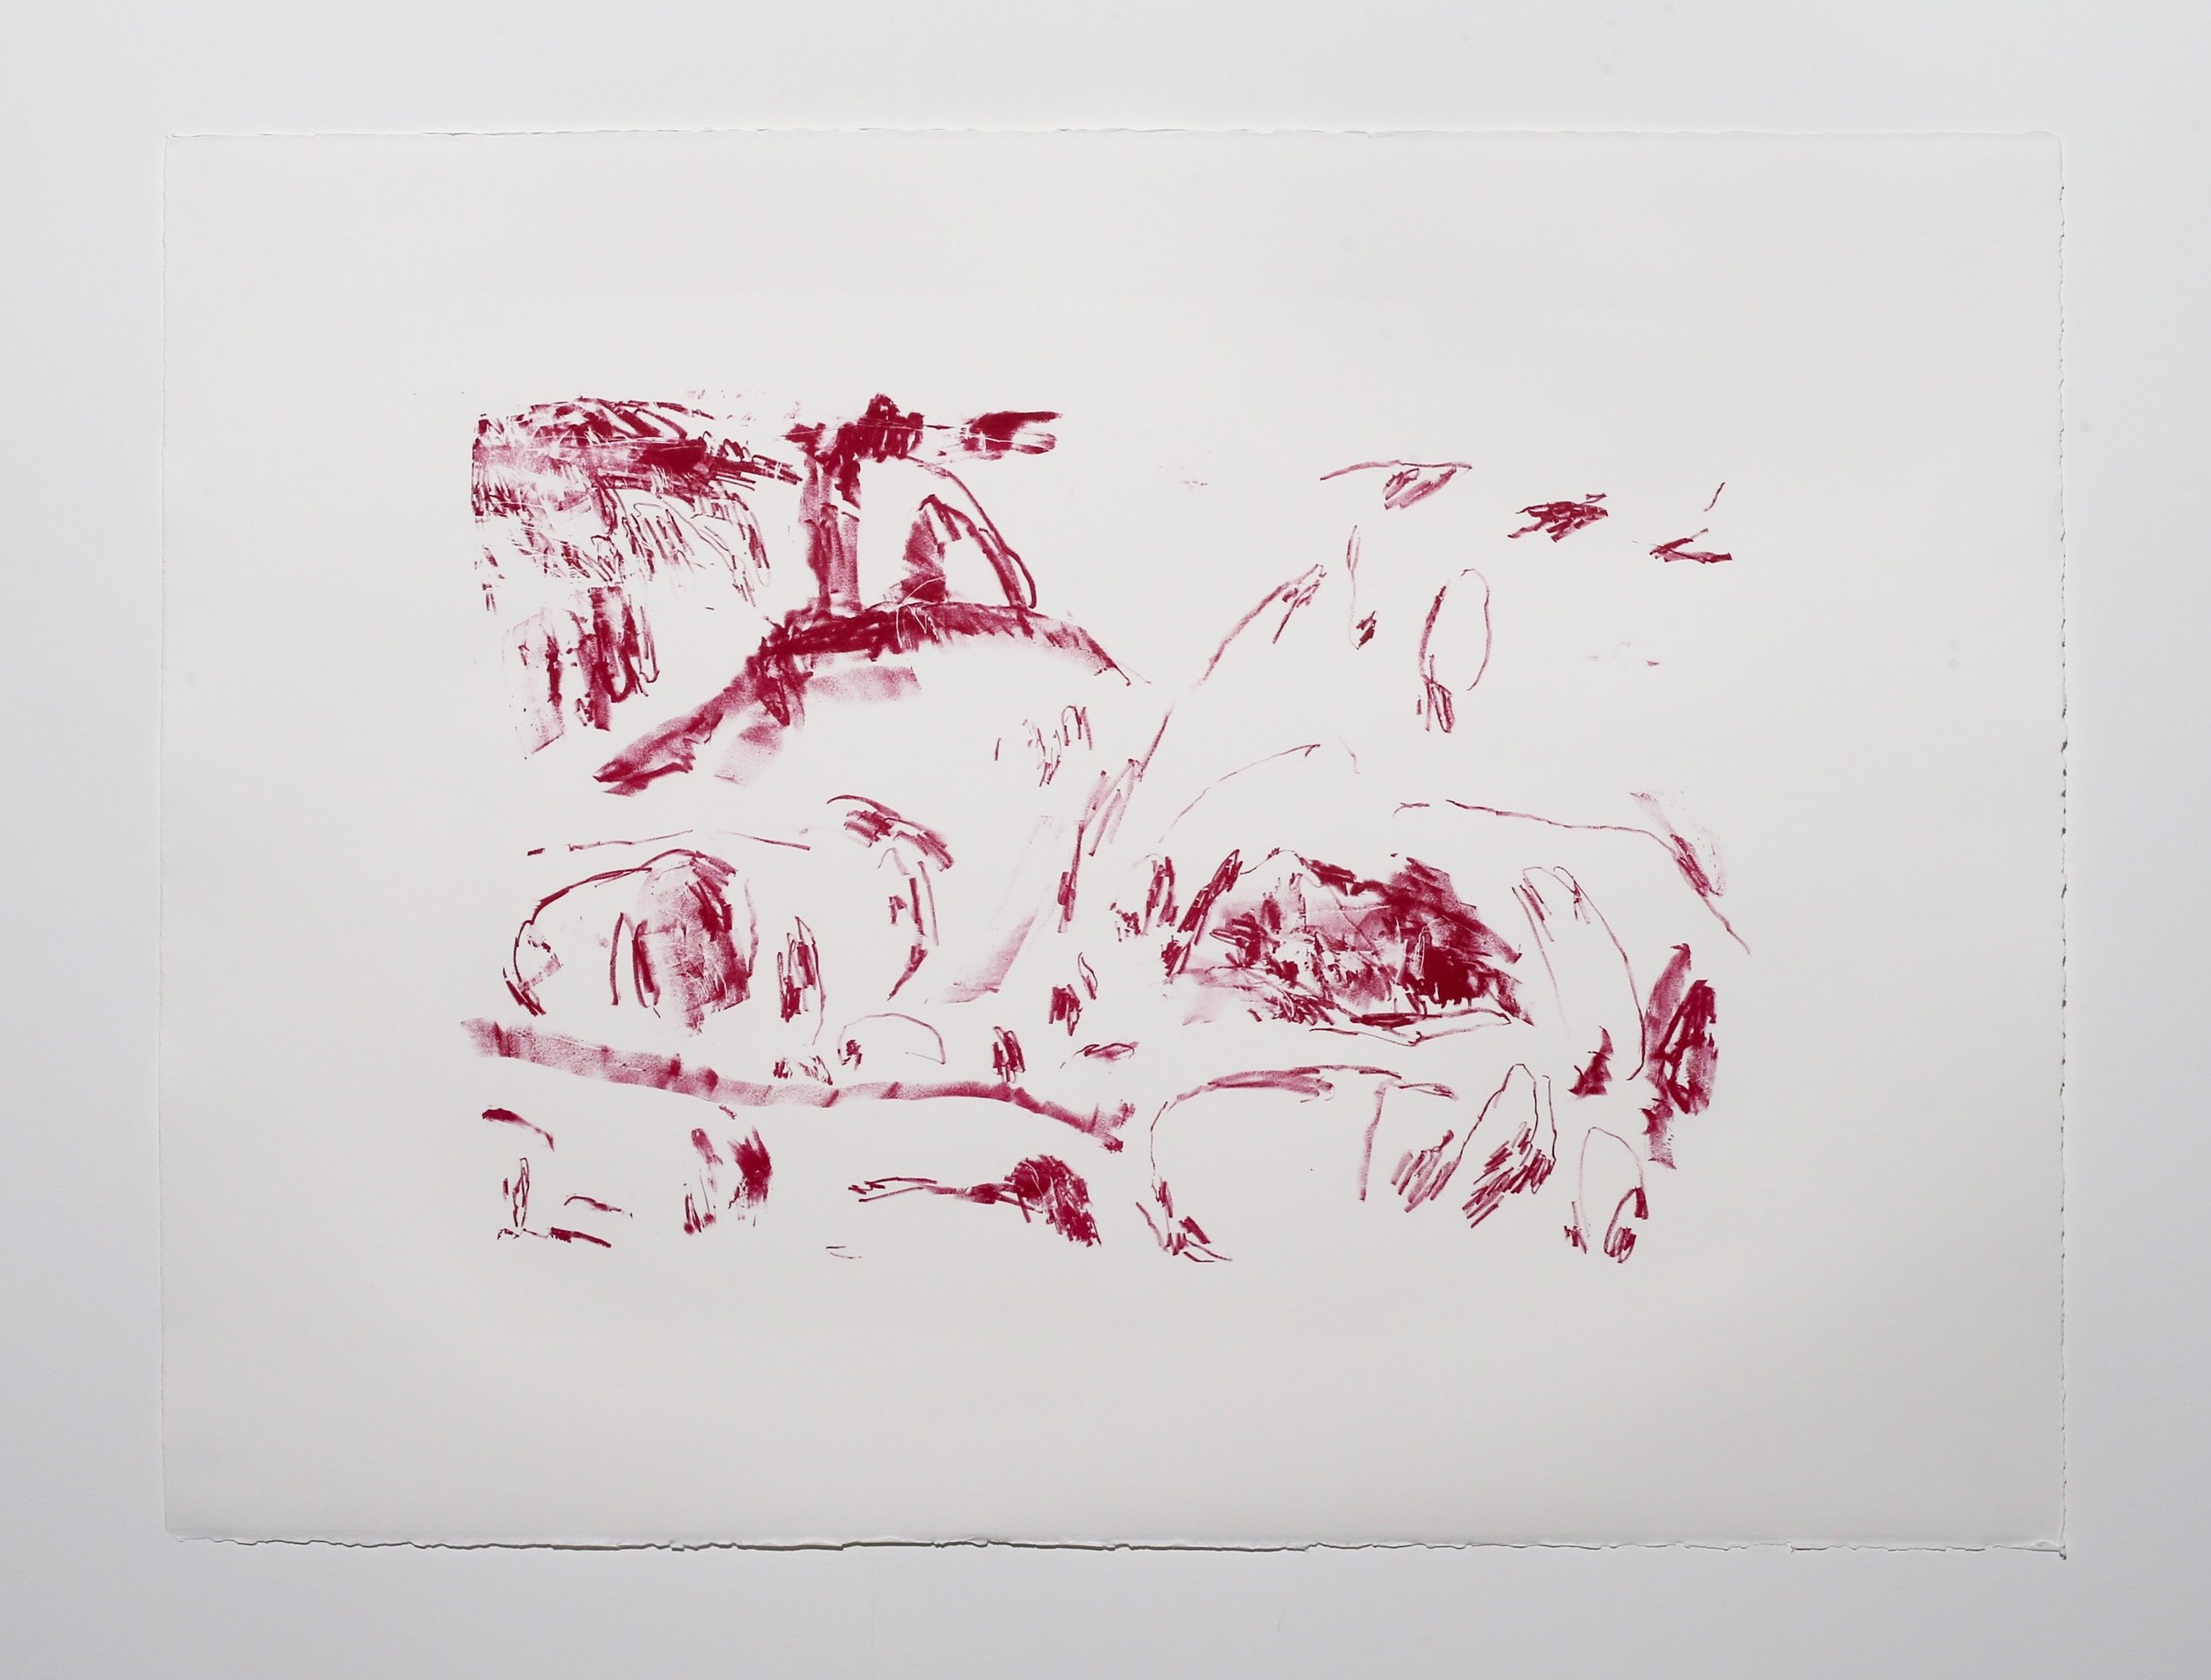 Scene I , 2019, lithograph on paper, 56 x 76 cm (paper size) Edition of 1 $275